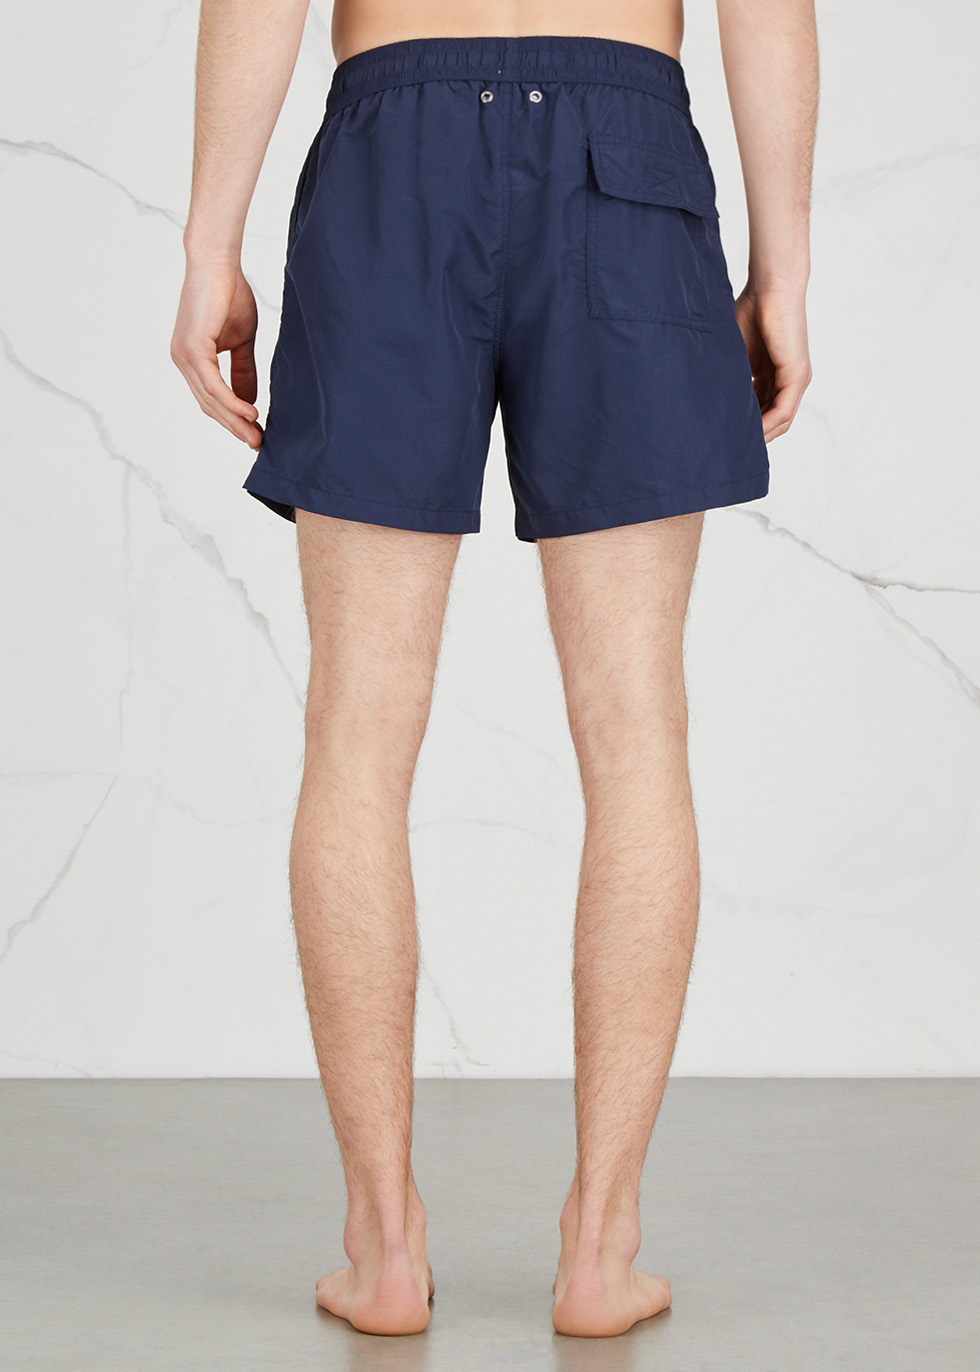 Hawaiian navy swim shorts - Polo Ralph Lauren